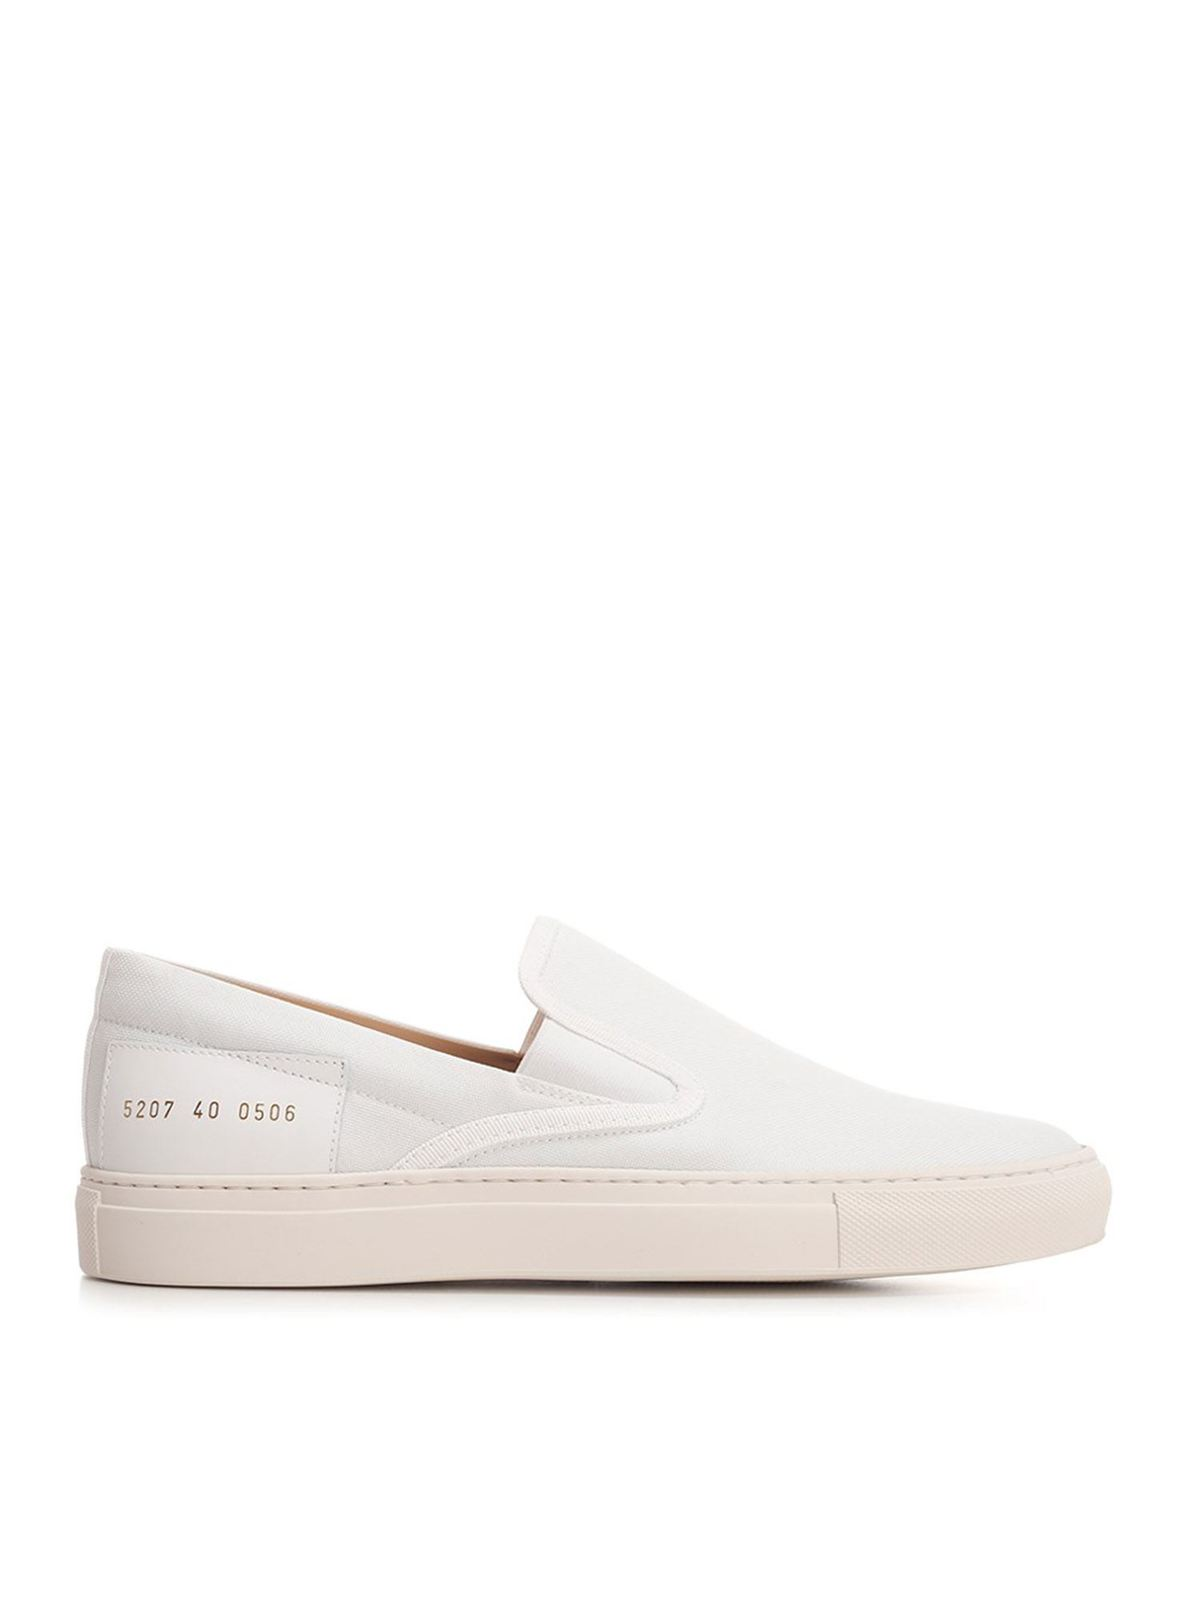 Common Projects CANVAS SLIP ON SNEAKERS IN WHITE